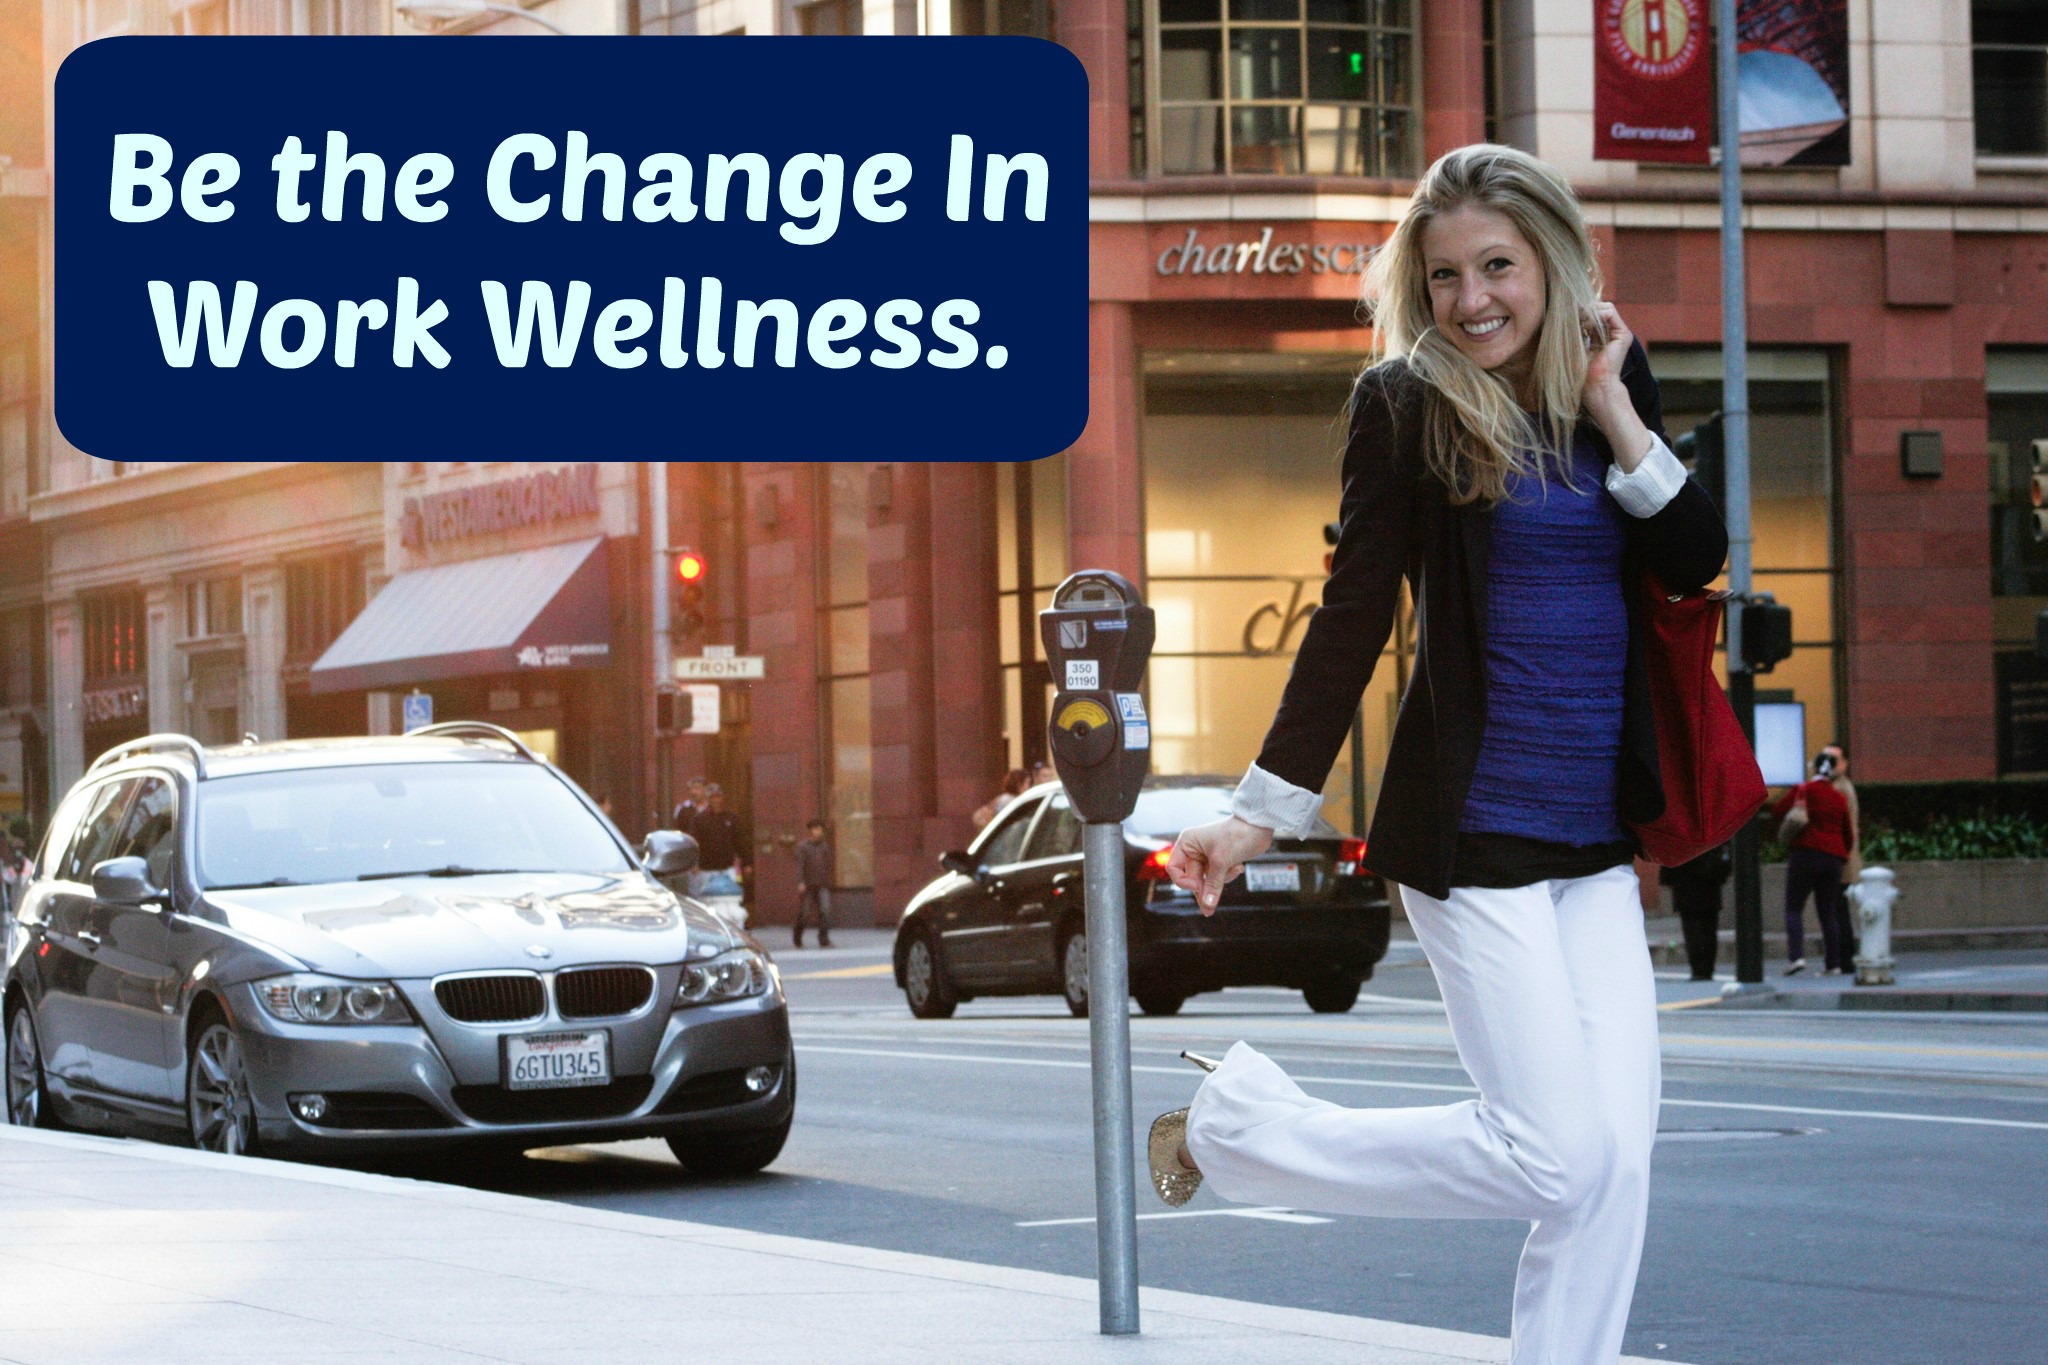 be-the-change-in-work-wellness